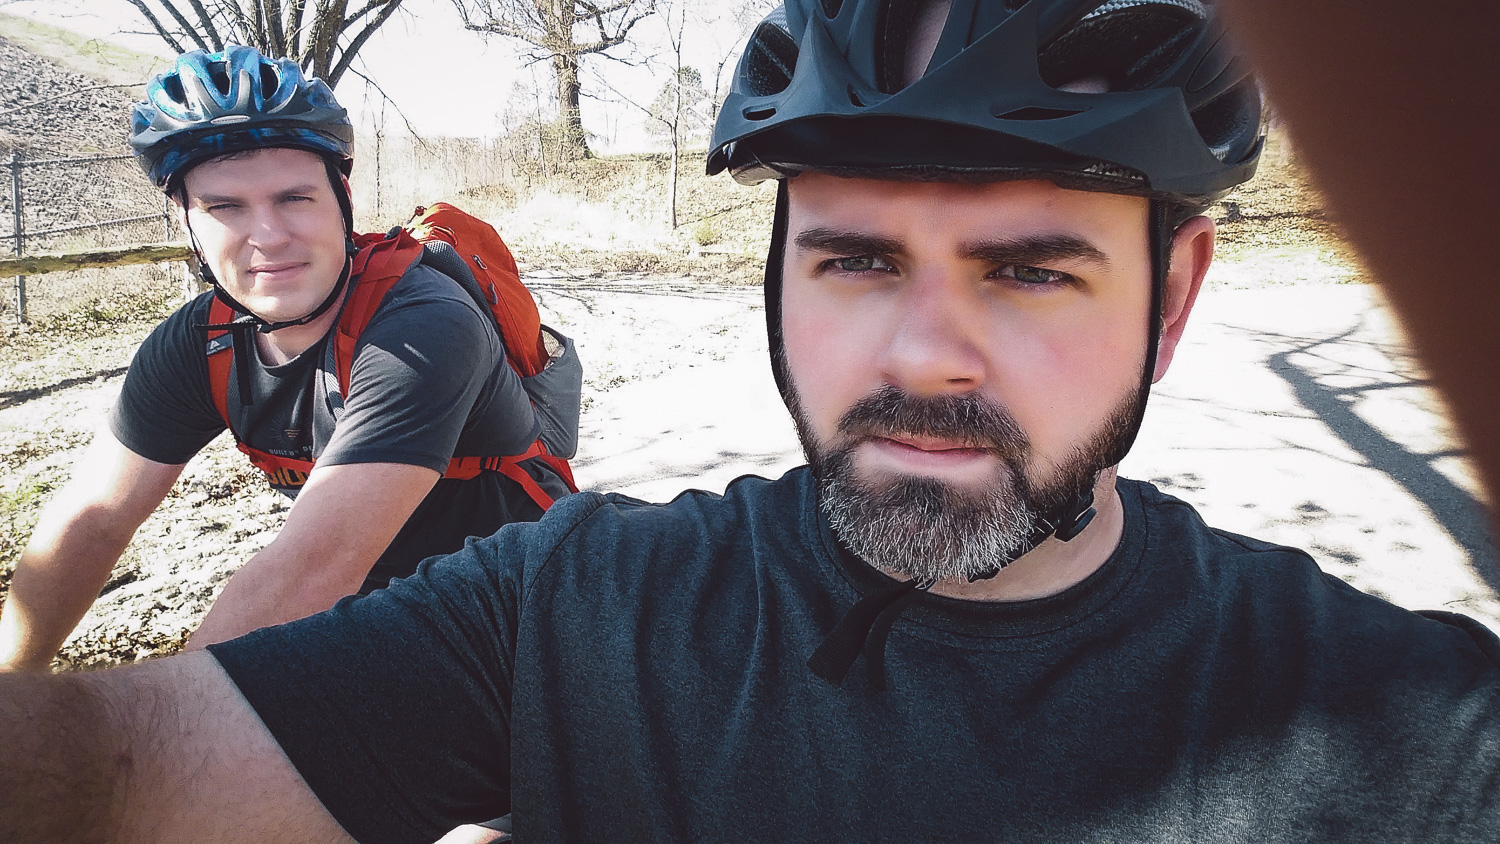 Greg and James going on a bike ride.